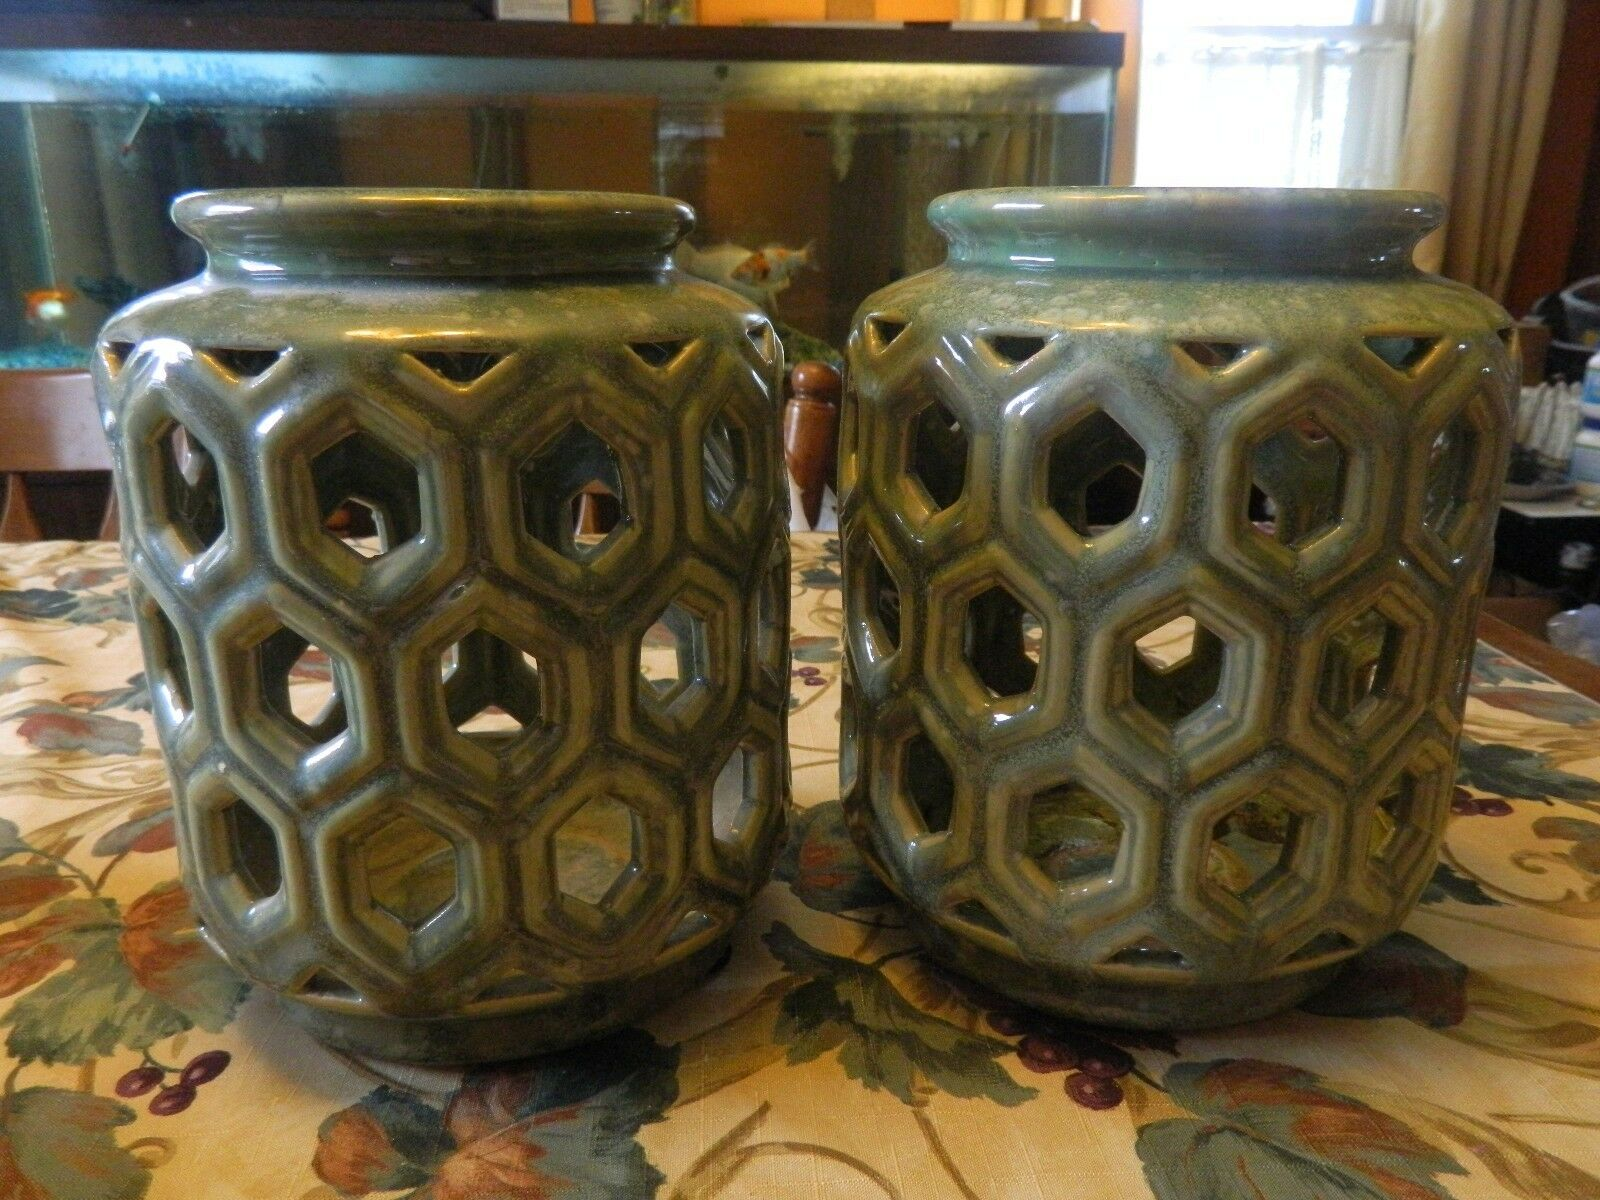 2 Green Glazed Wilshire Circle Lanterns Ceramic Outdoor Patio Candle Holders